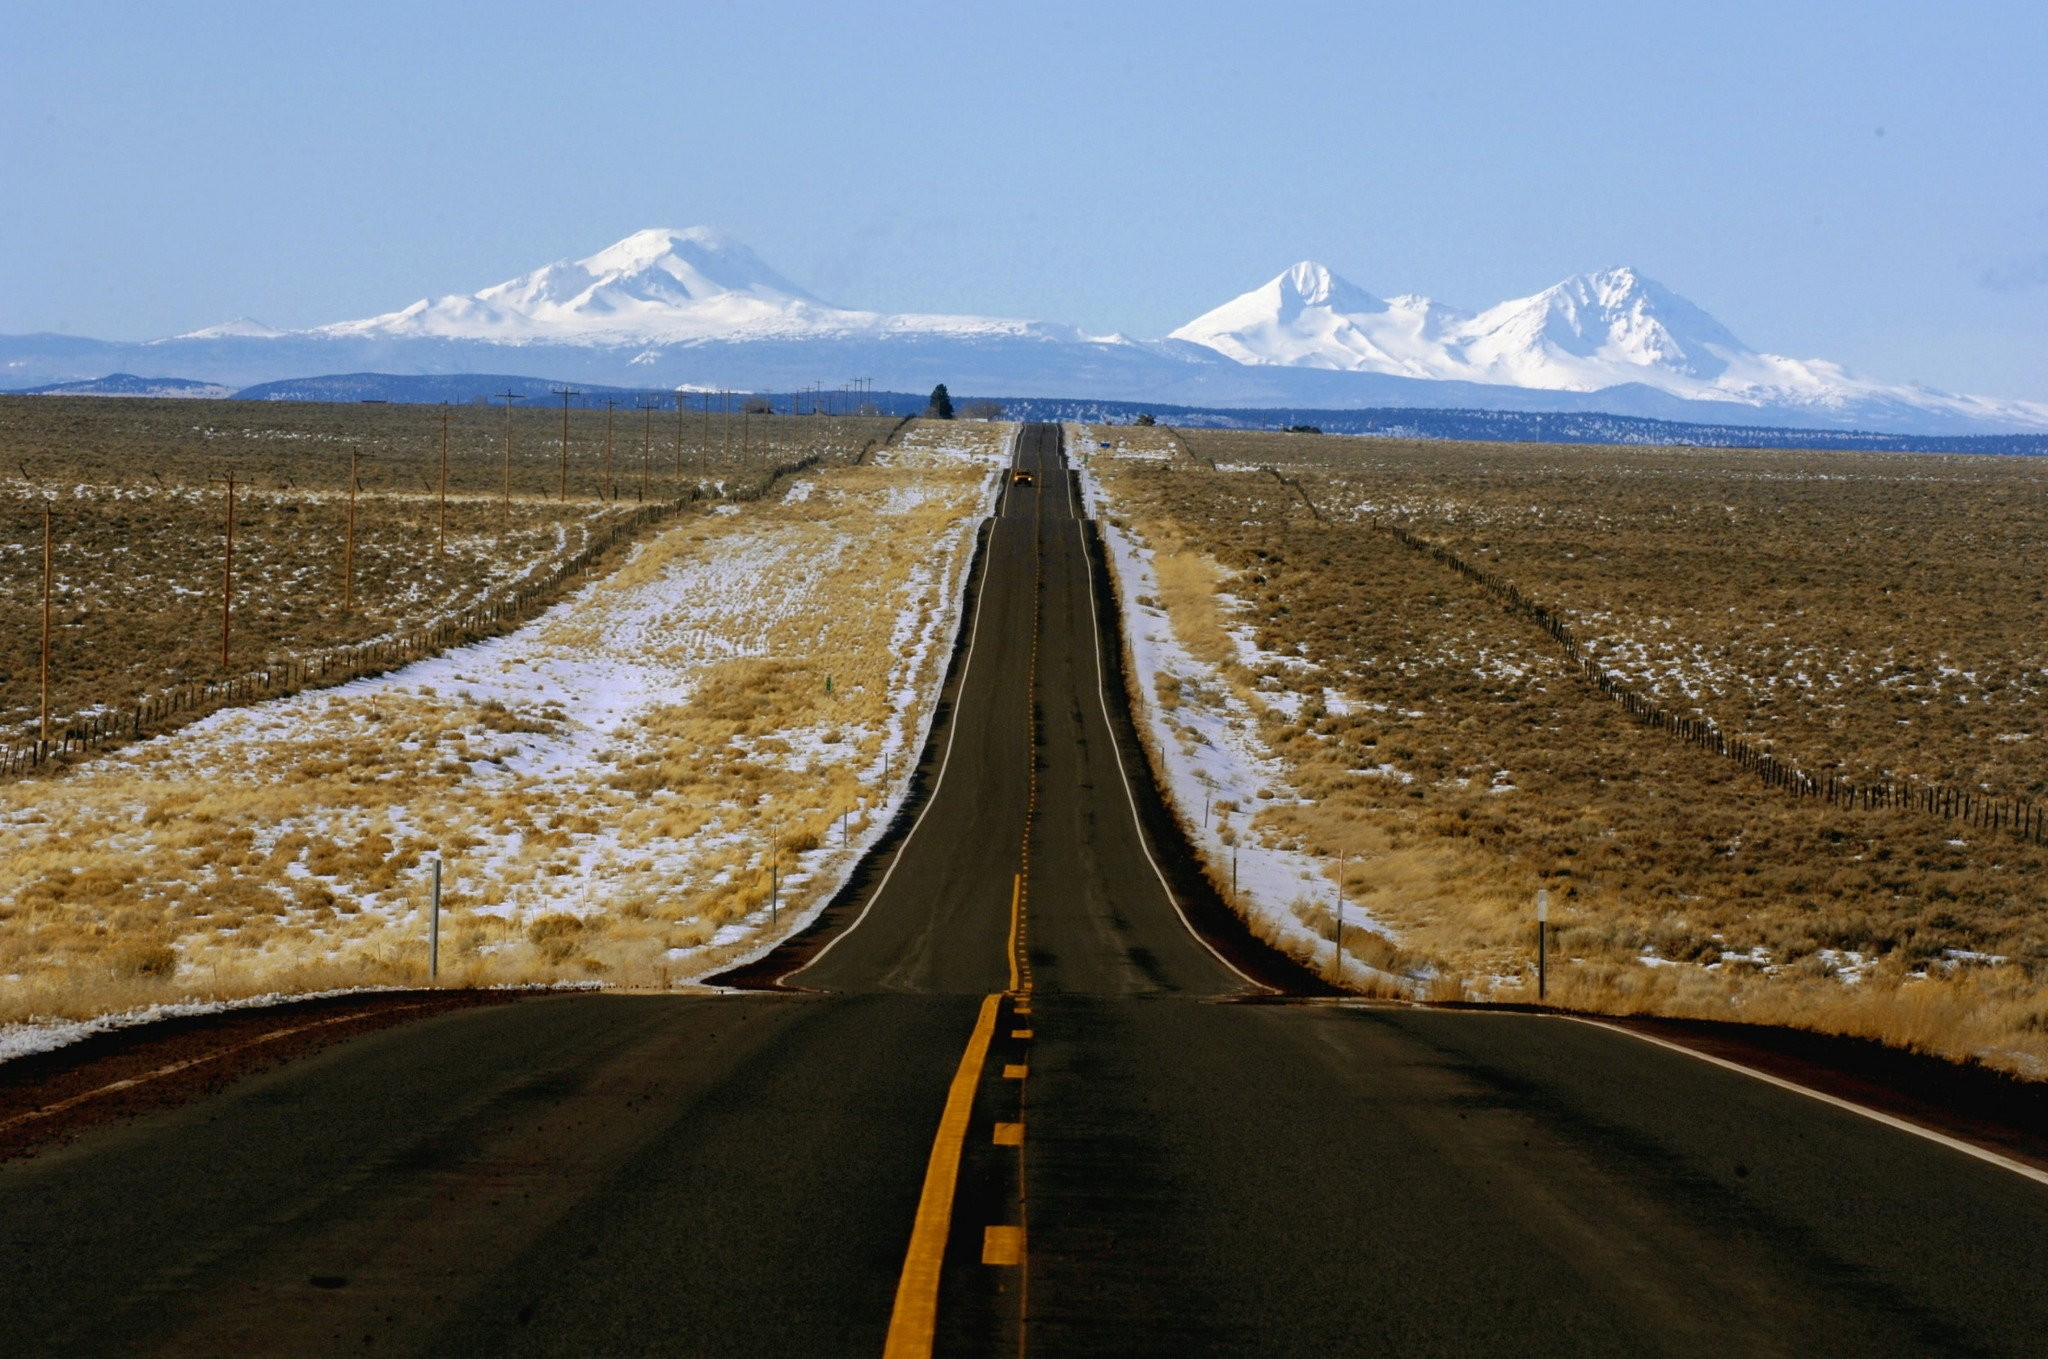 U S  20: Route crosses the Cascades and heads east